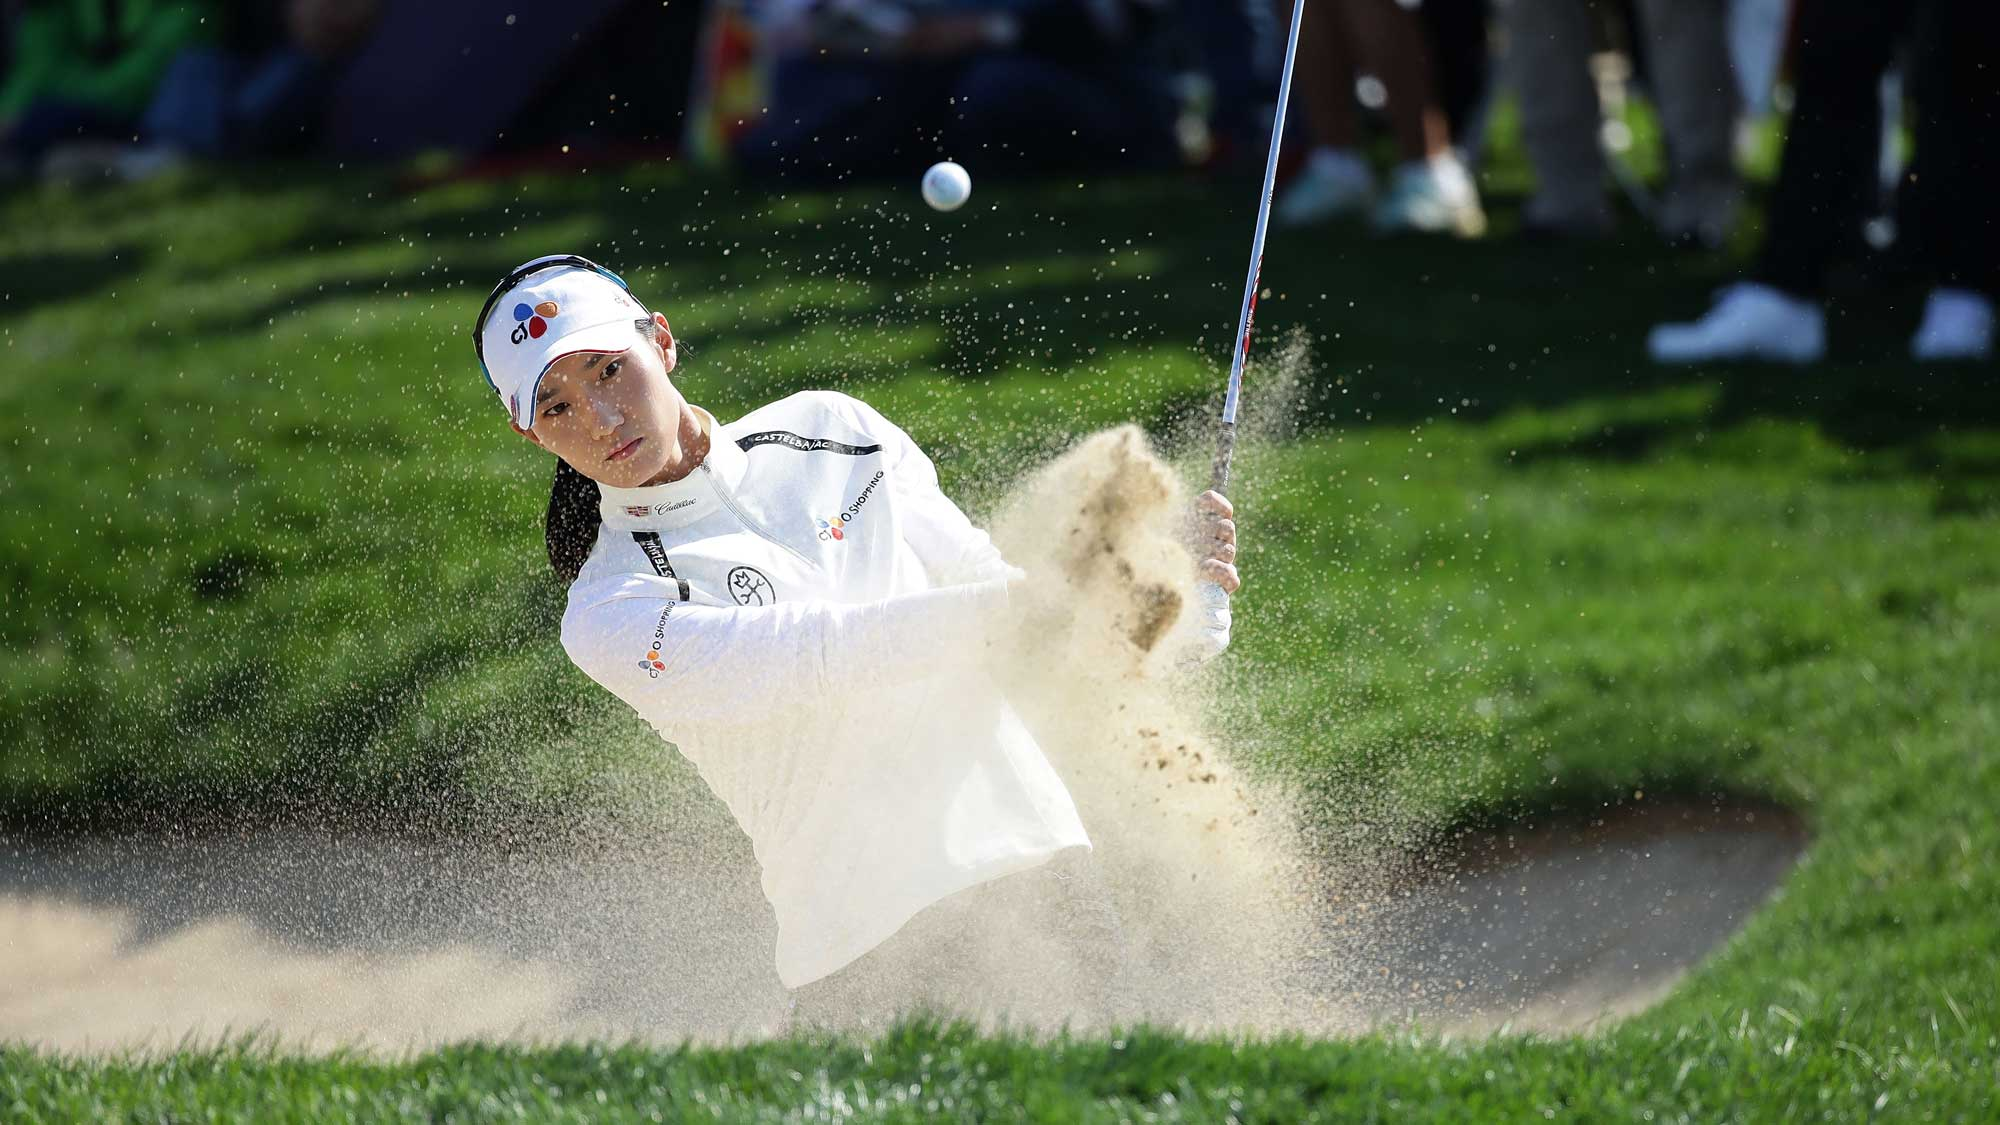 Min-Sun Kim of South Korea plays a bunker shot on the 6th hole during the third round of the LPGA KEB Hana Bank Championship